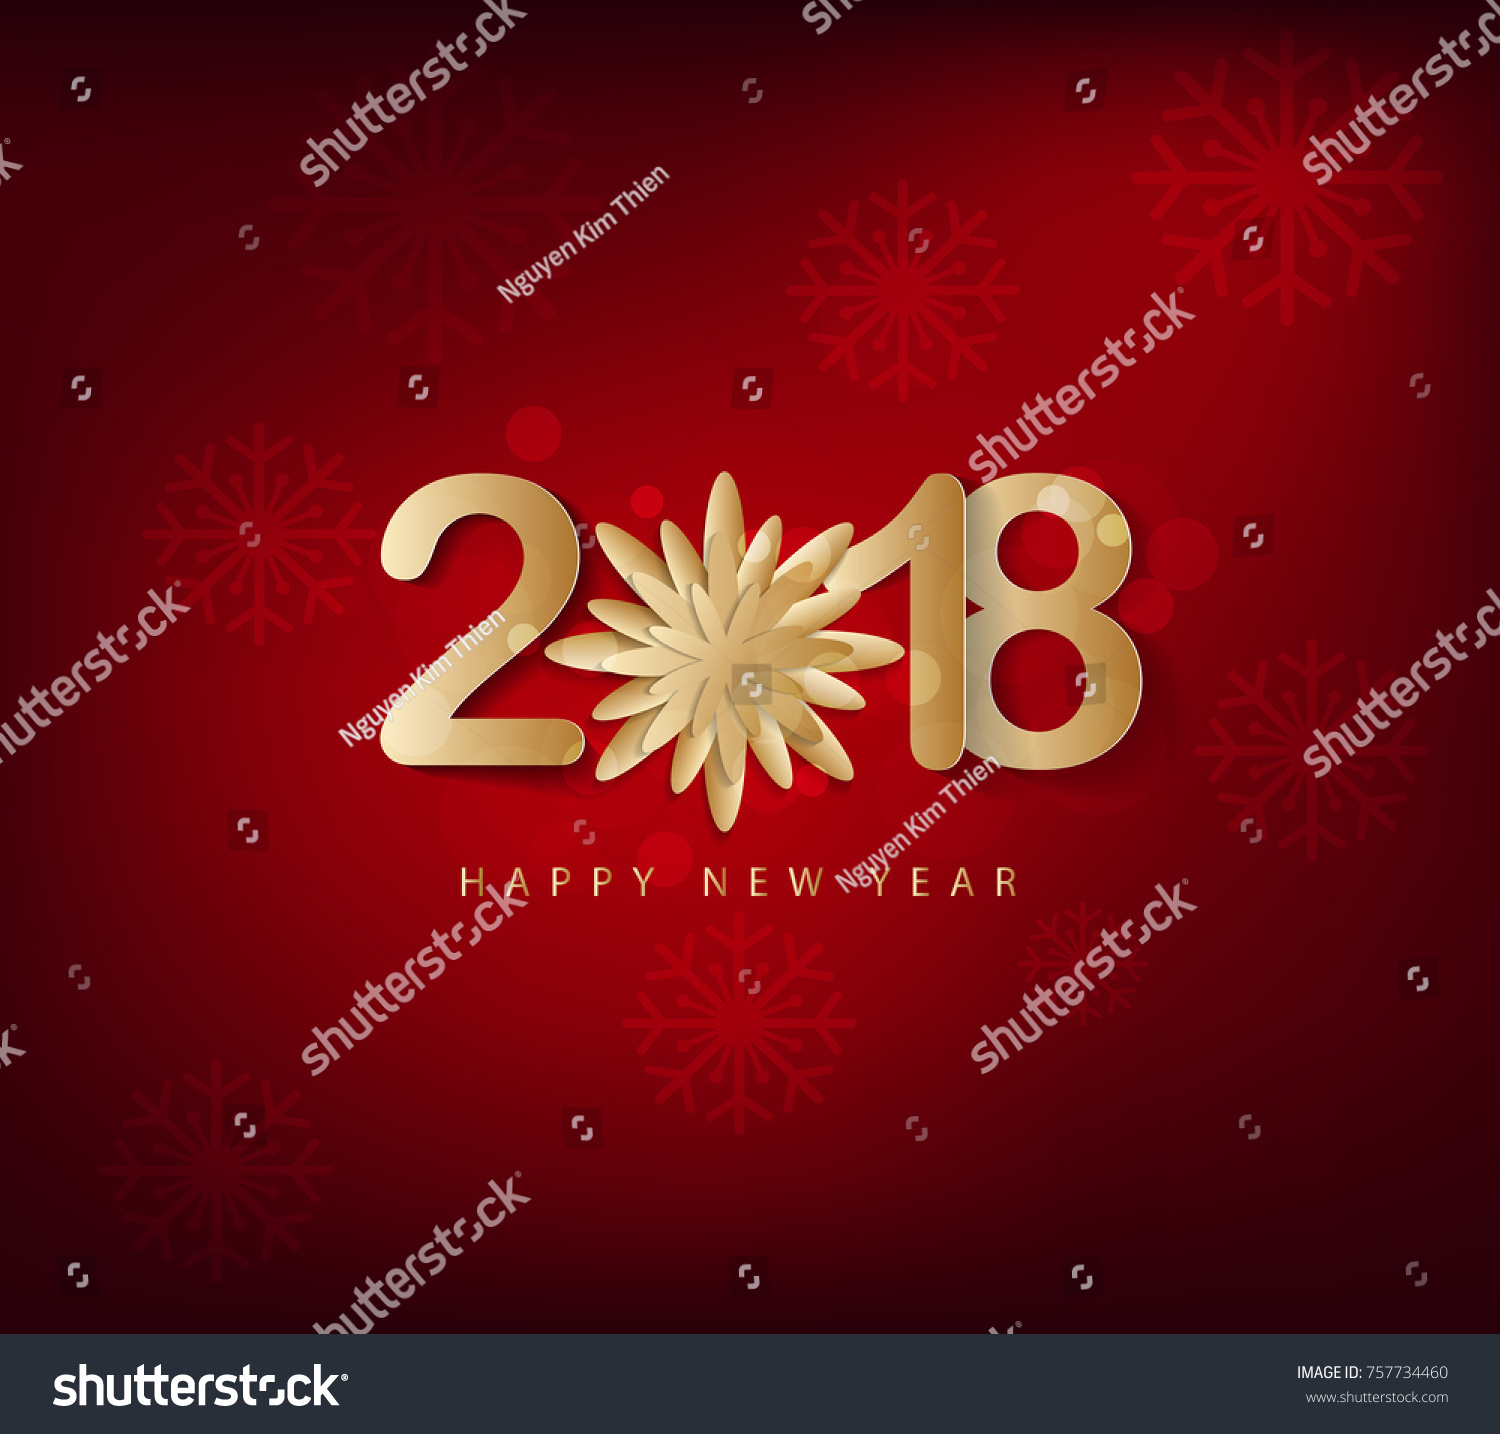 Happy new year 2018 greeting card stock vector 757734460 shutterstock happy new year 2018 greeting card and merry christmas chinese new year of the dog kristyandbryce Images